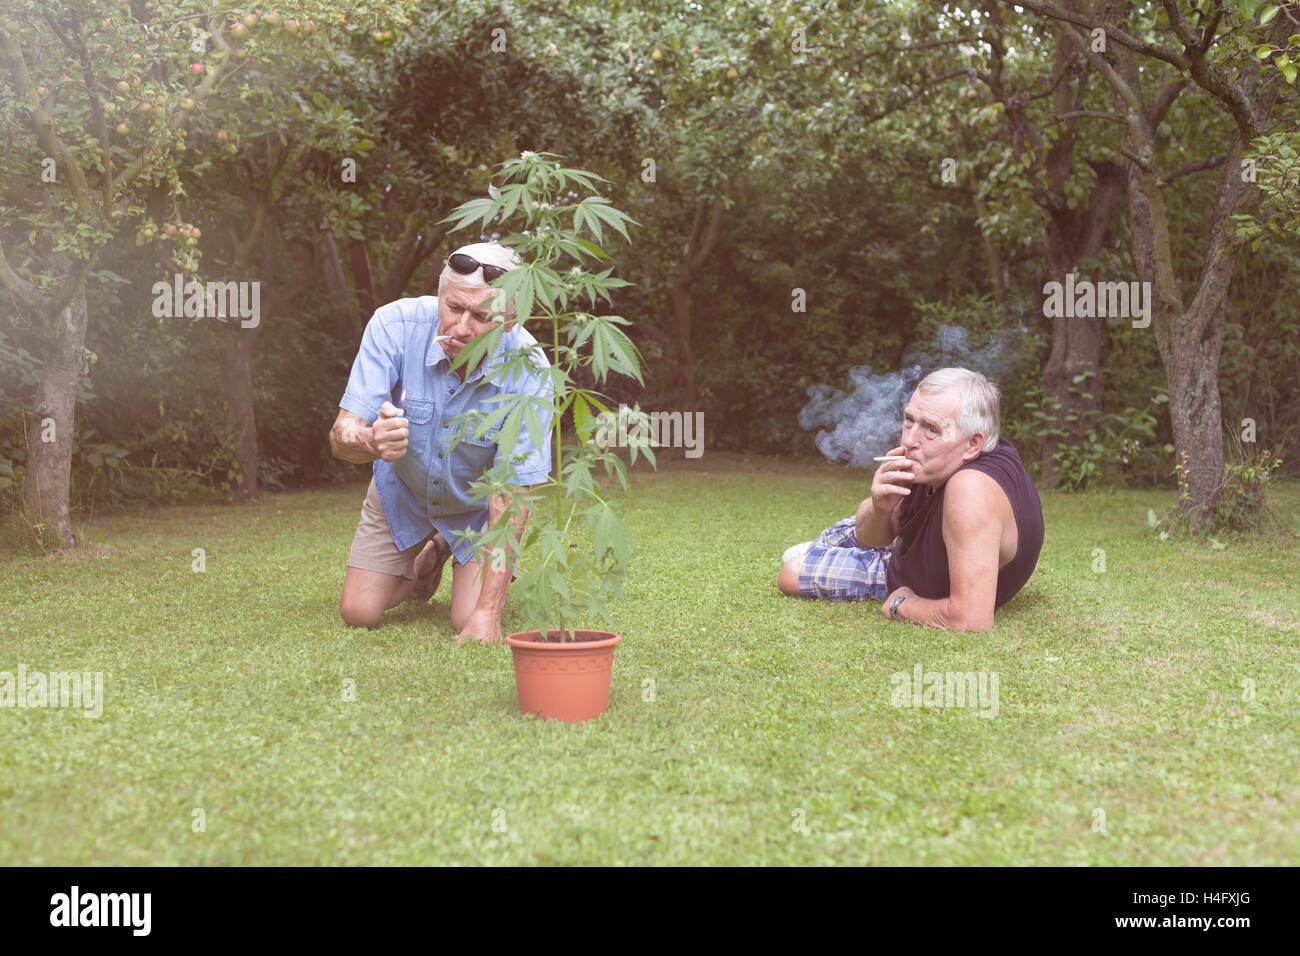 Two seniors smoking marijuana joint and relaxing next to the Cannabis plant outdoors in the garden. Stock Photo